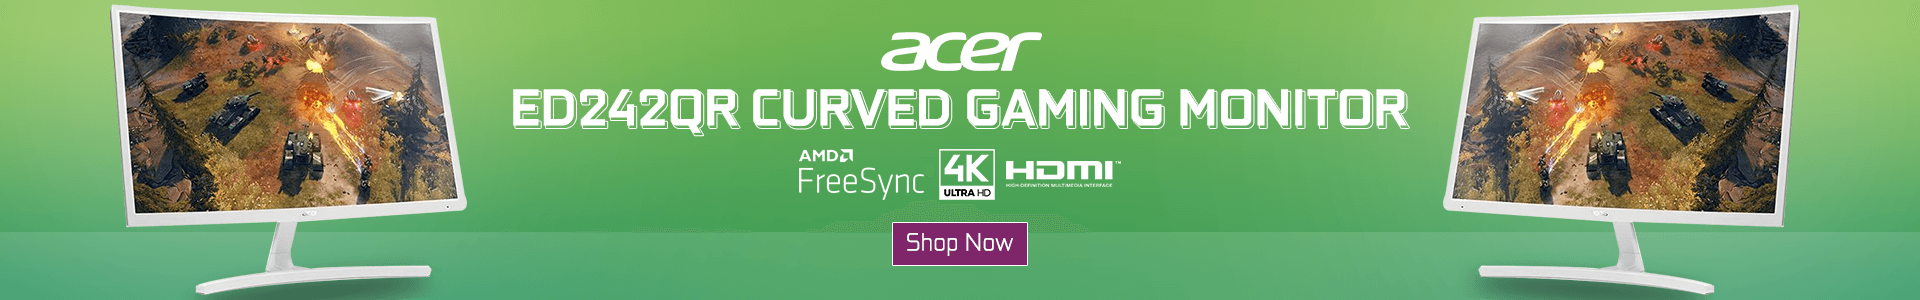 Acer ED242QR Curved Gaming Monitor (White)